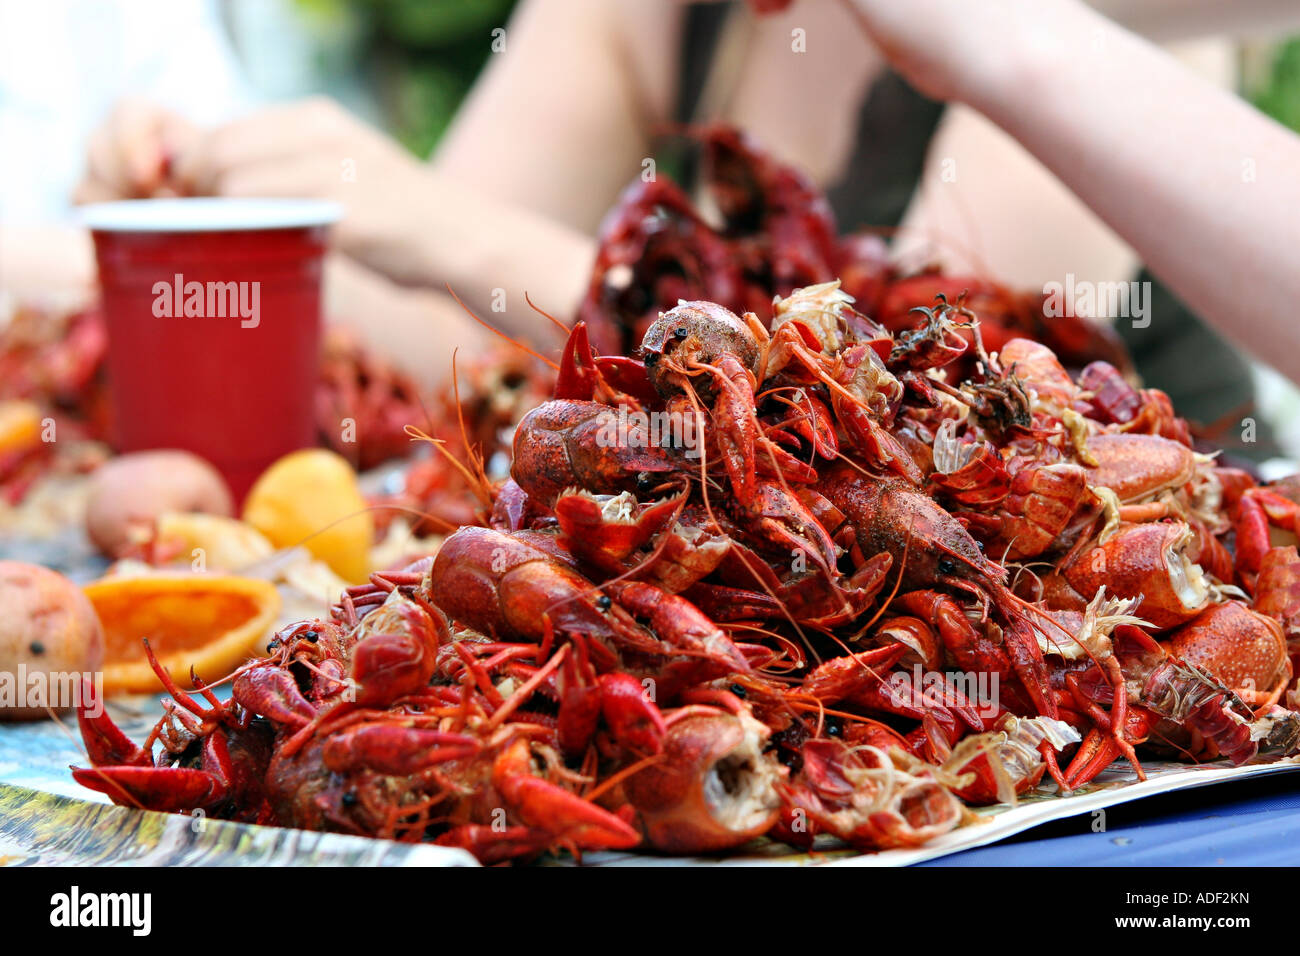 A Pile Of Half Eaten Crawfish At A Backyard Crawfish Boil Stock Image  Learn How To Eat